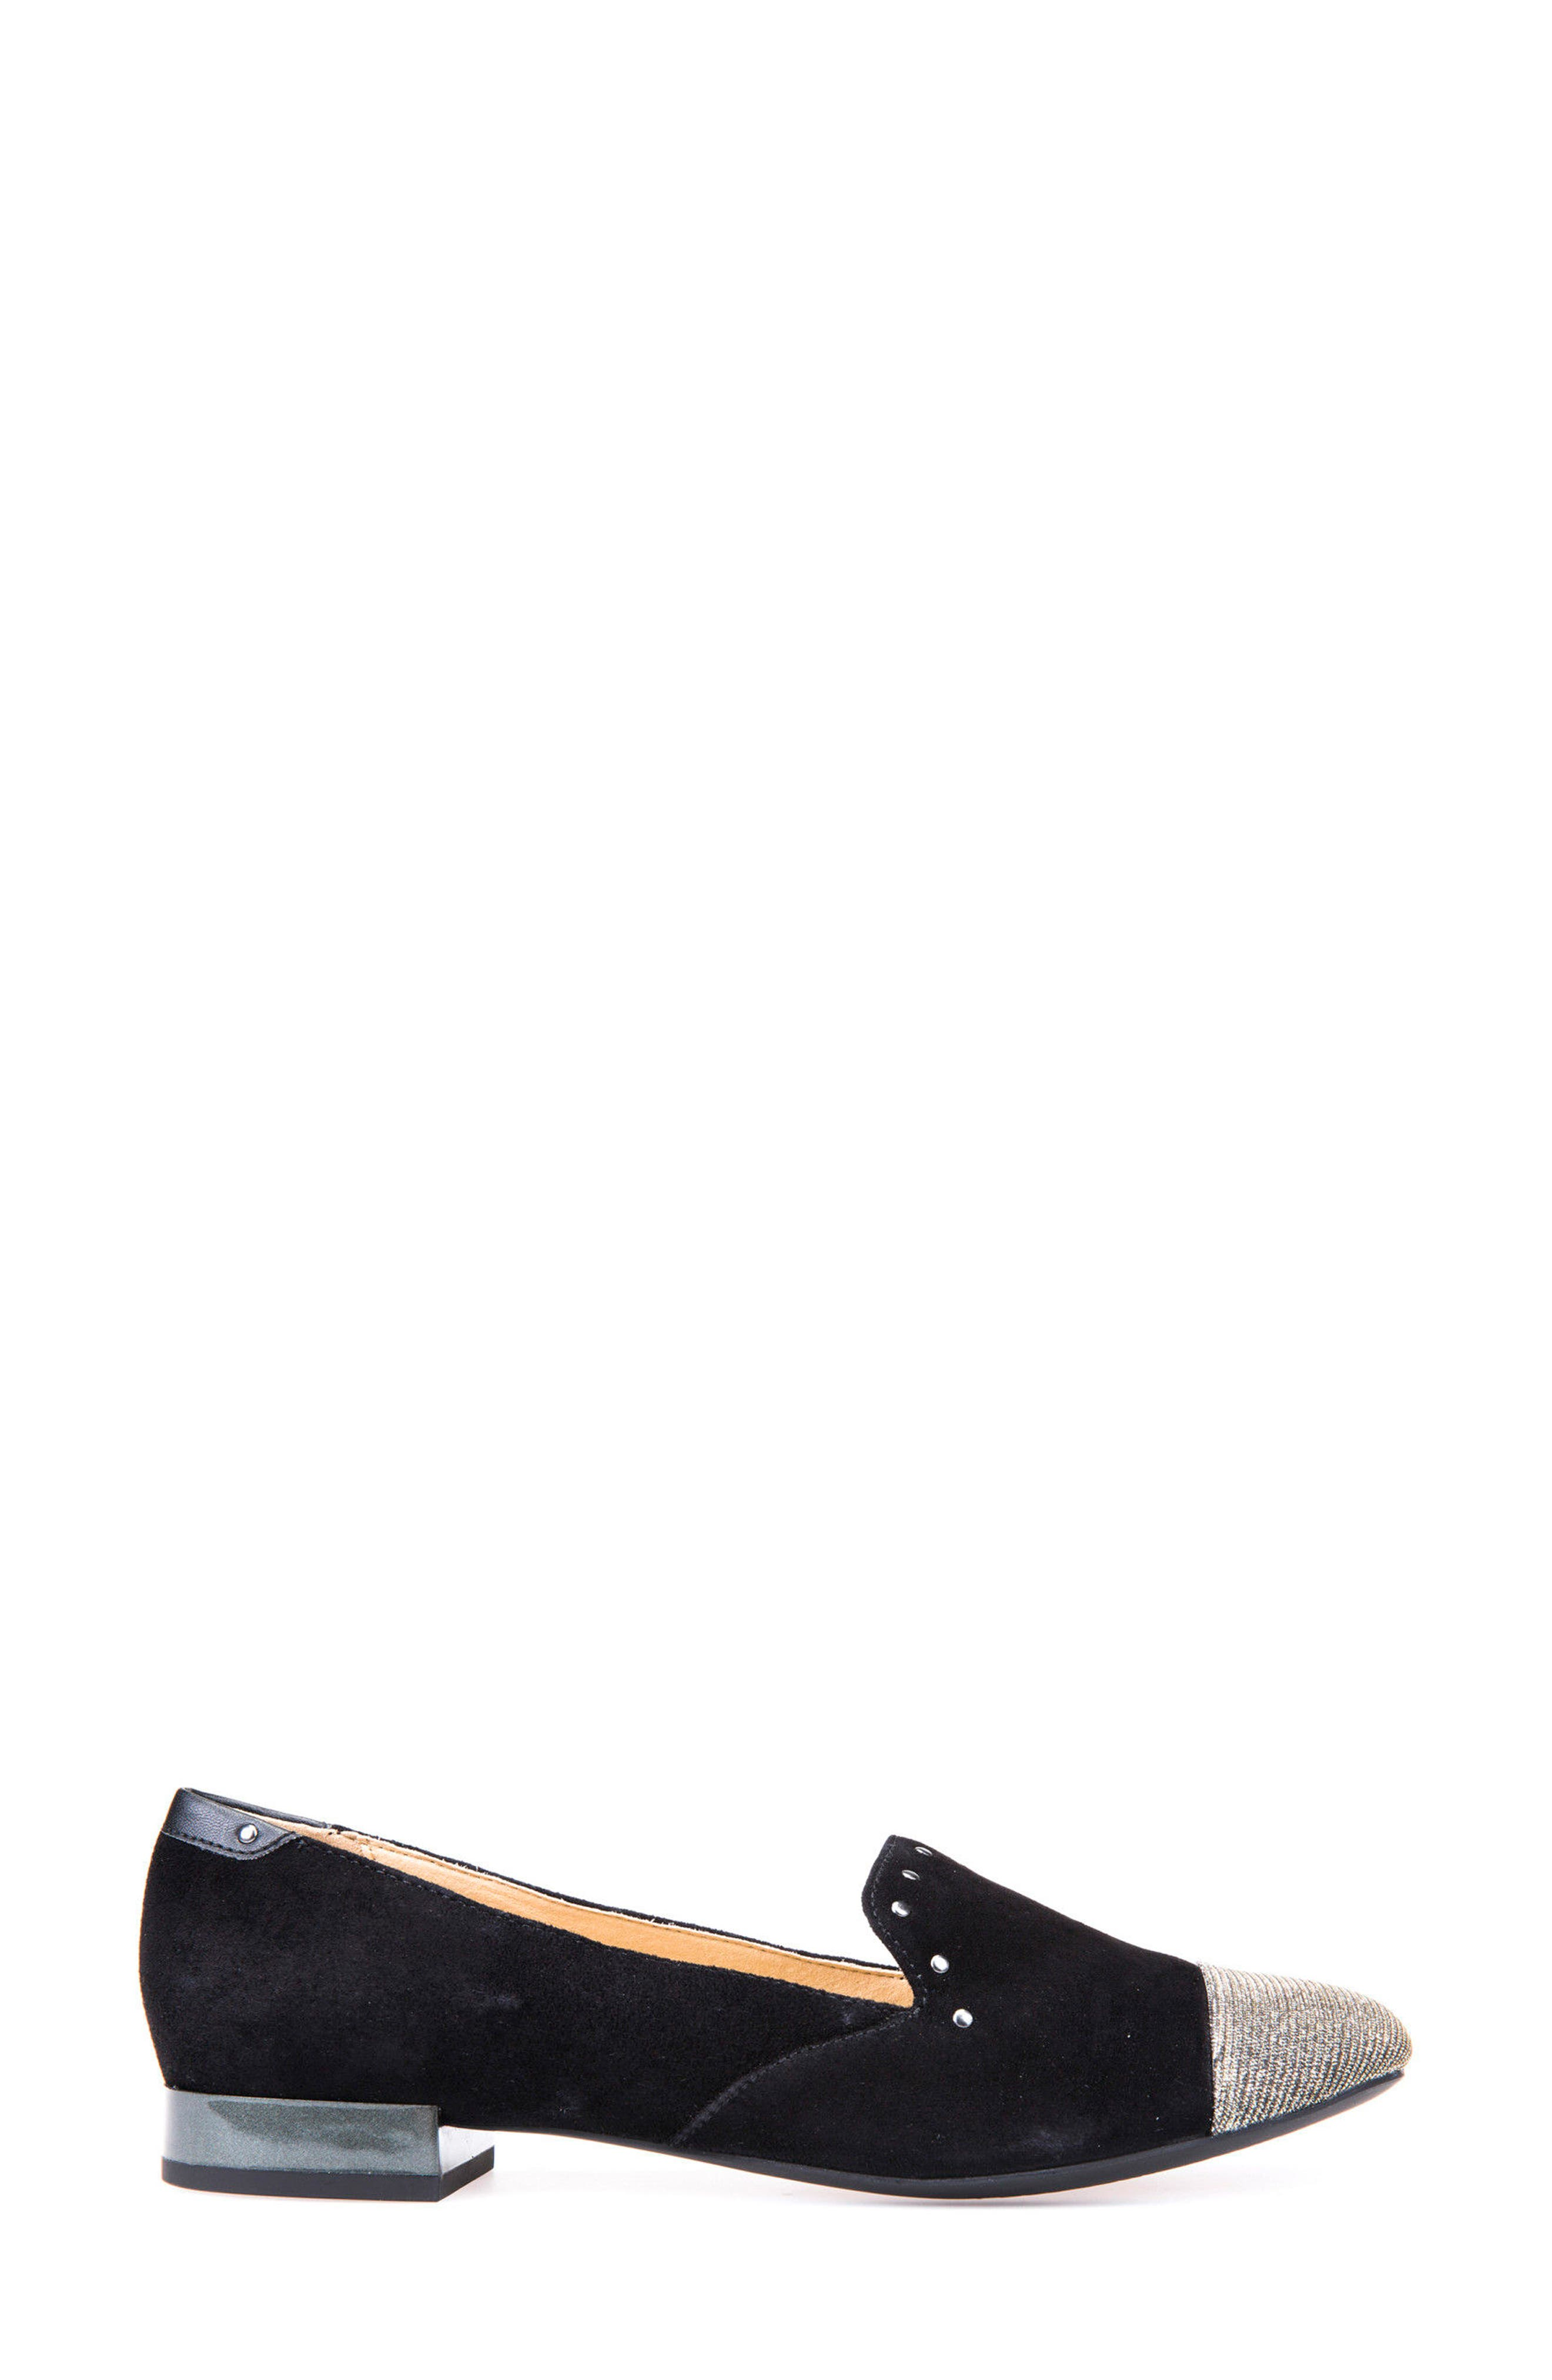 Wistrey Cap Toe Loafer,                             Alternate thumbnail 7, color,